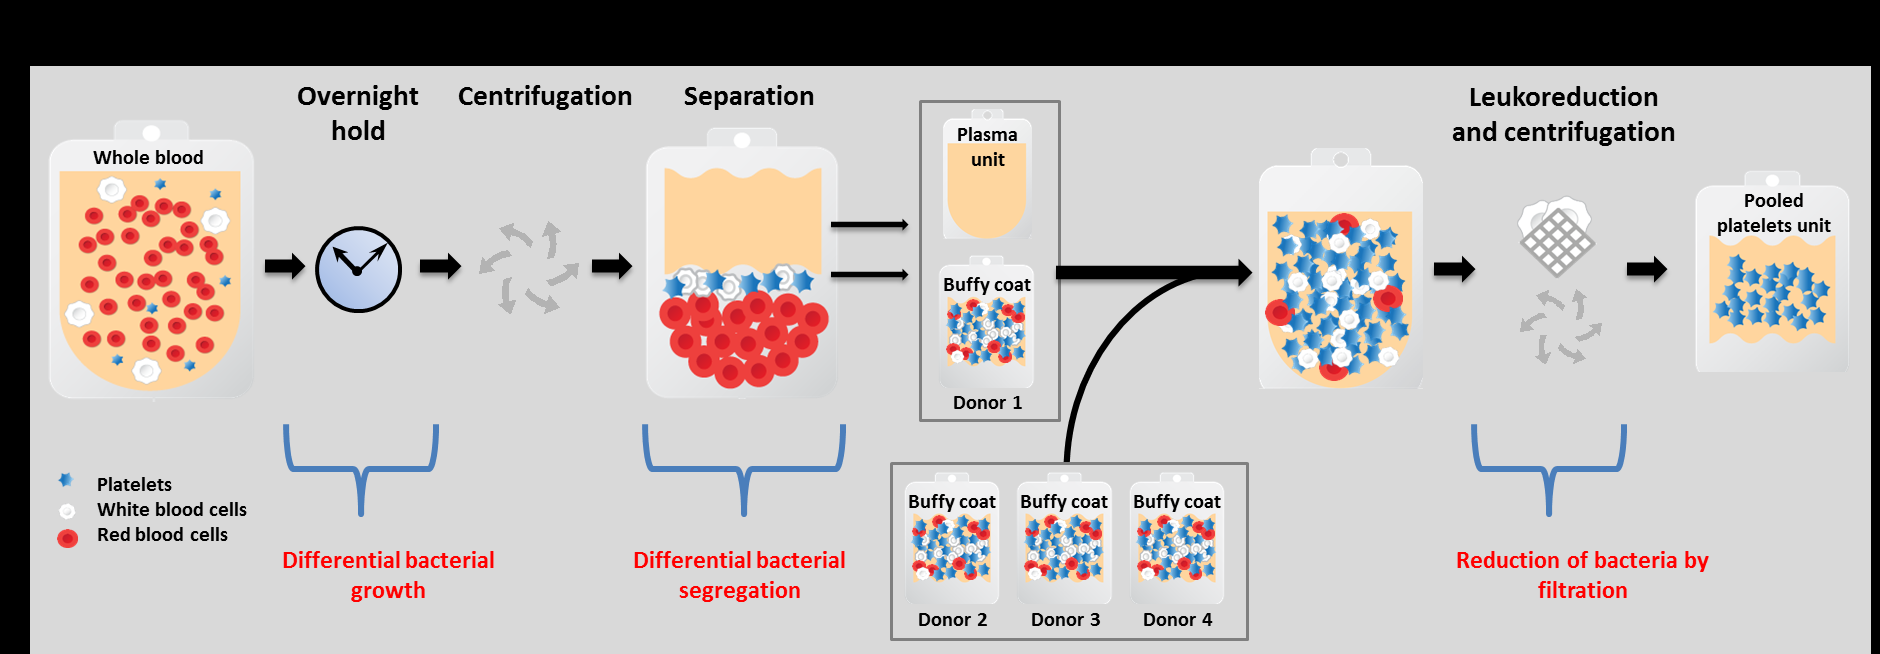 bacterial behaviour during buffy coat platelet production